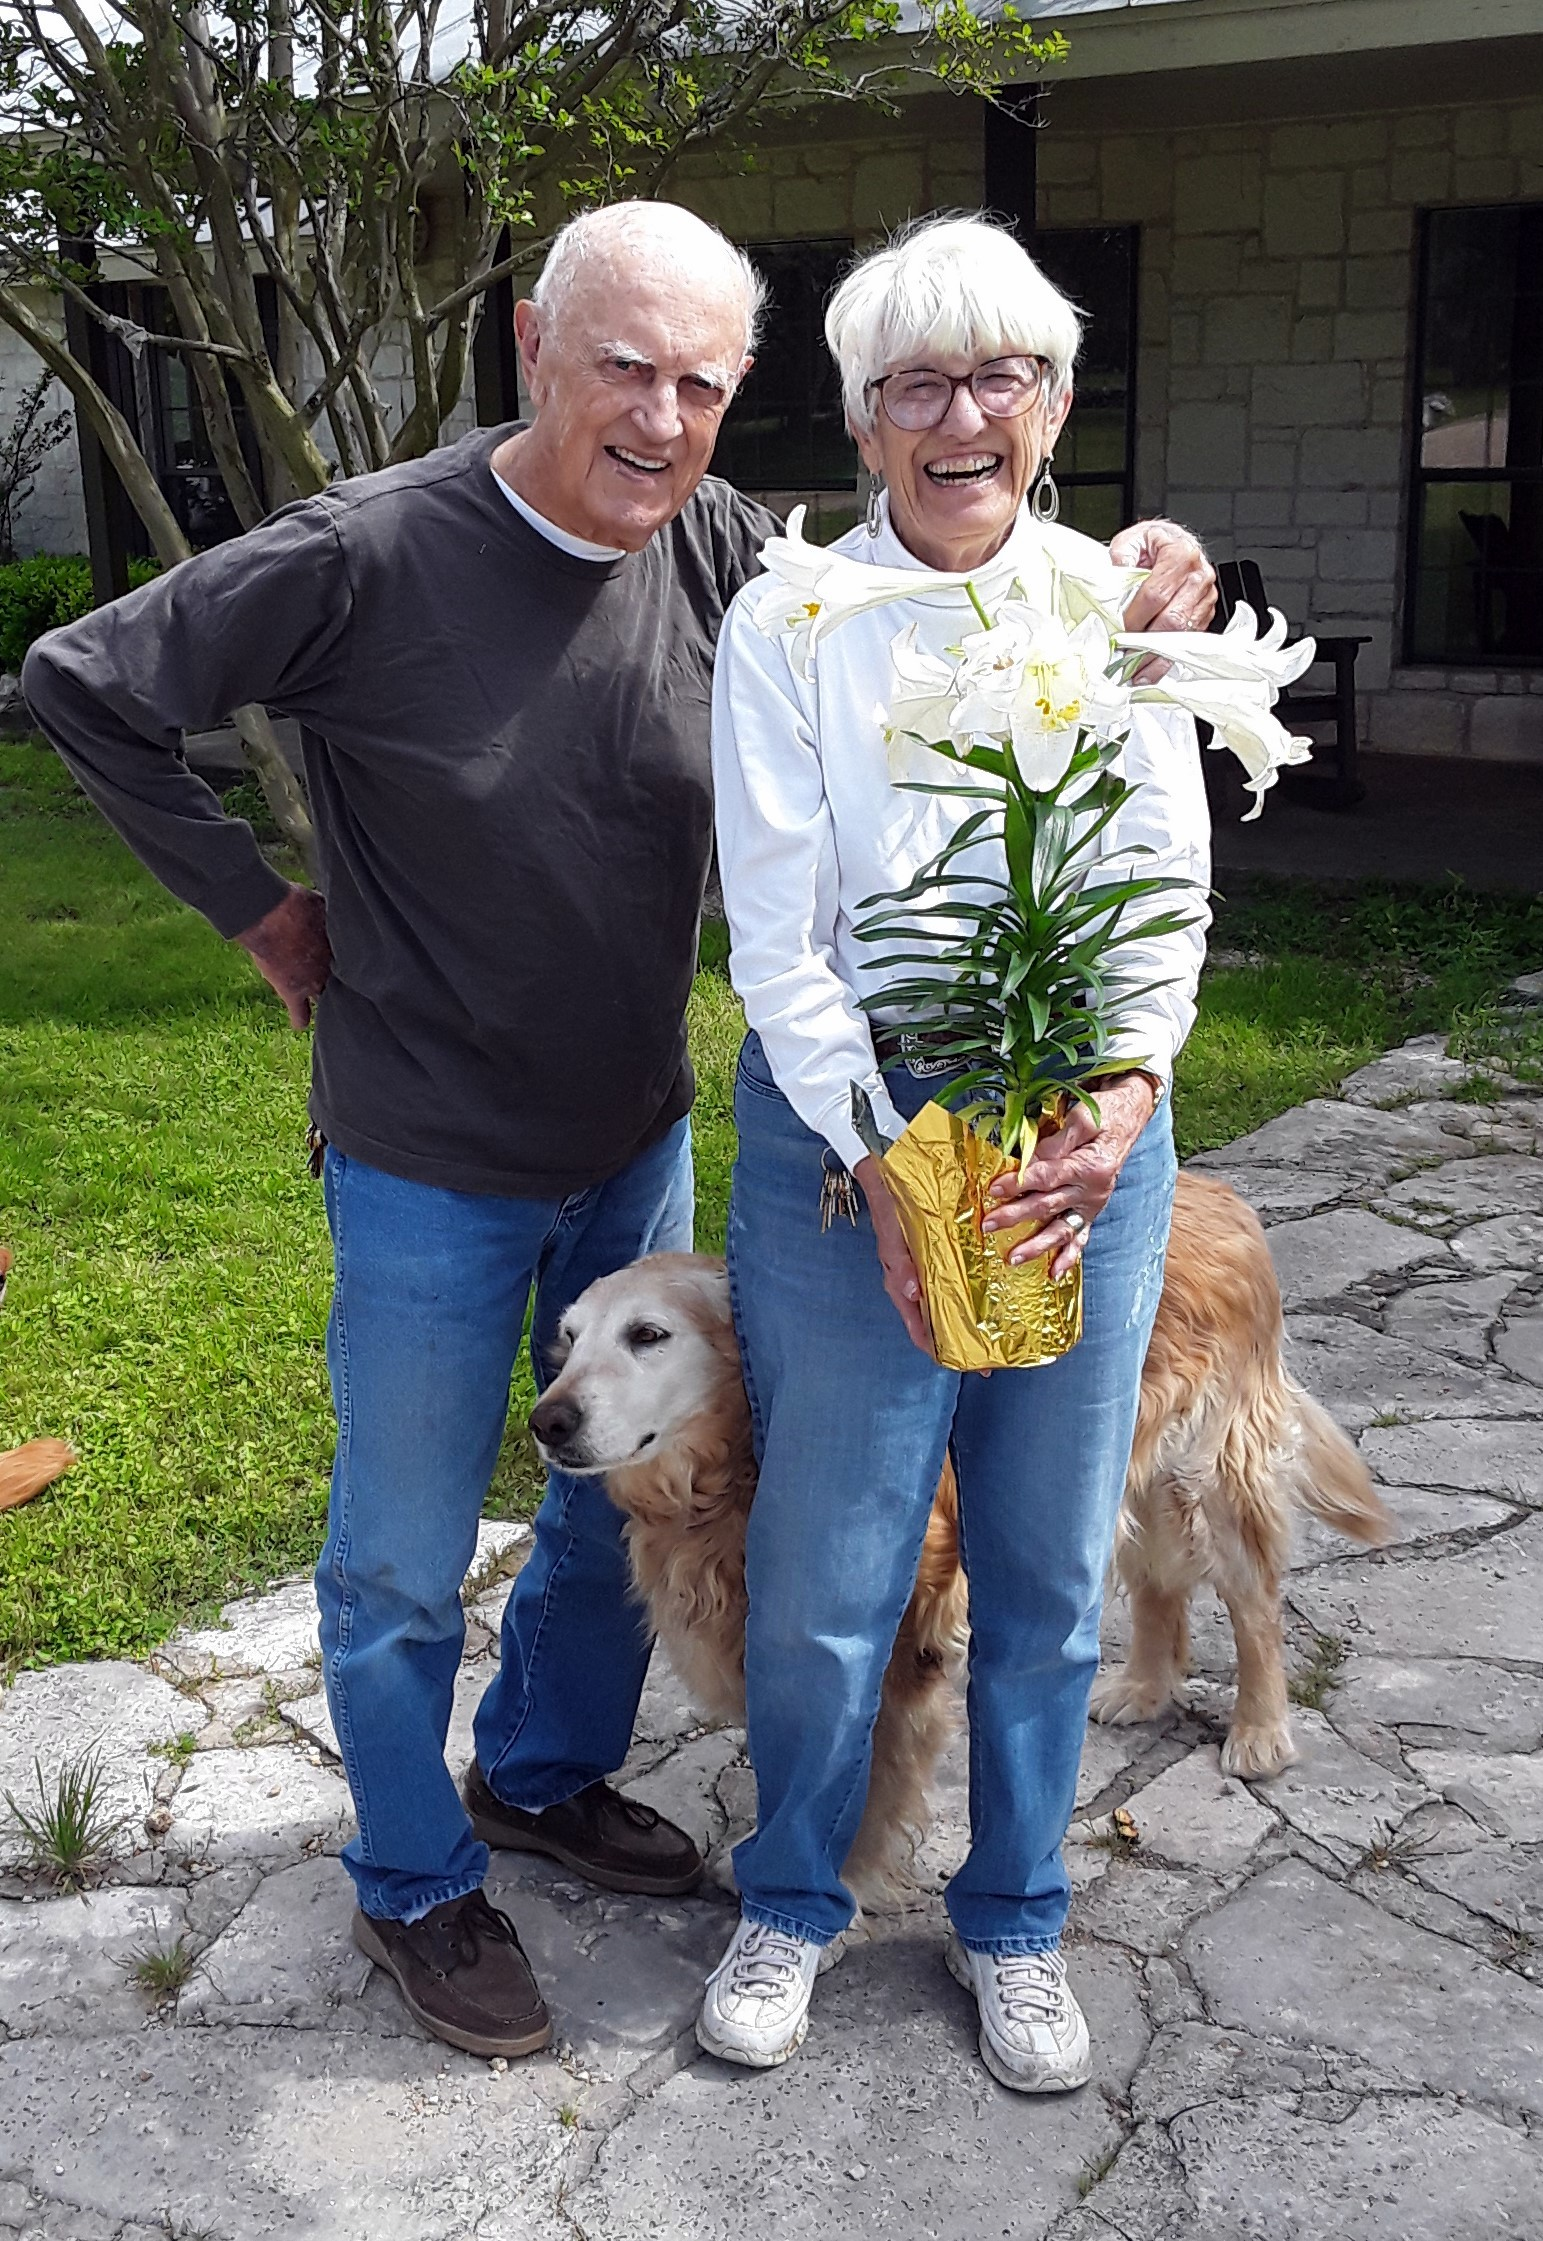 Bobbie and Gerry Pfeils with their faithful companion.